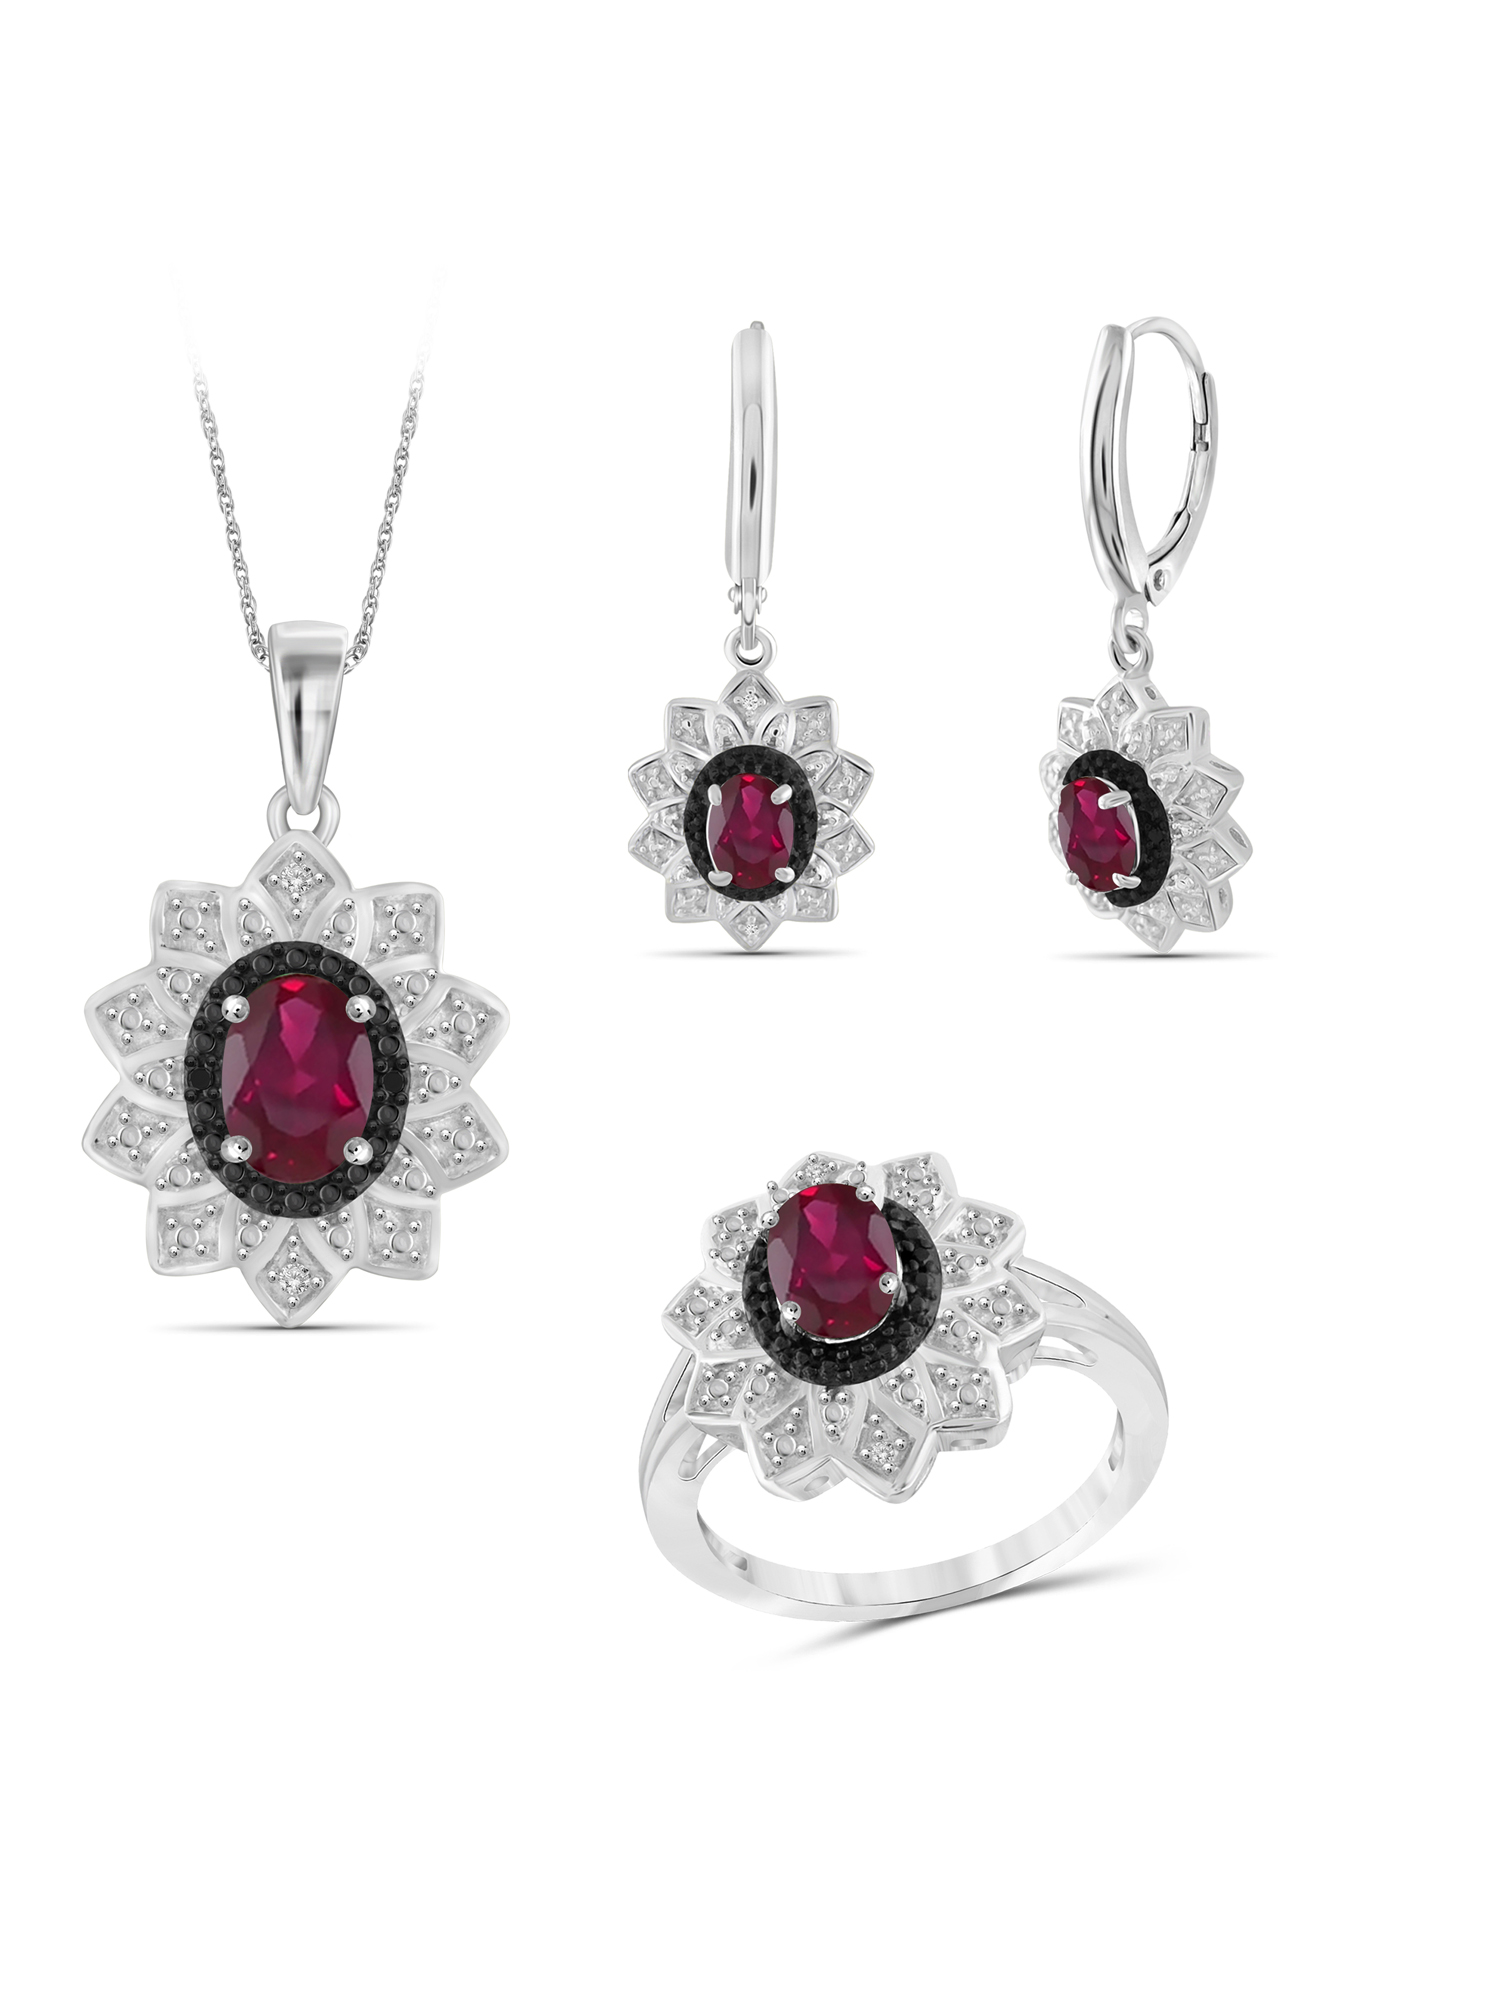 2 3/4 Carat T.G.W. Ruby And Black & White Diamond Accent Sterling Silver 3-Piece Jewelry set